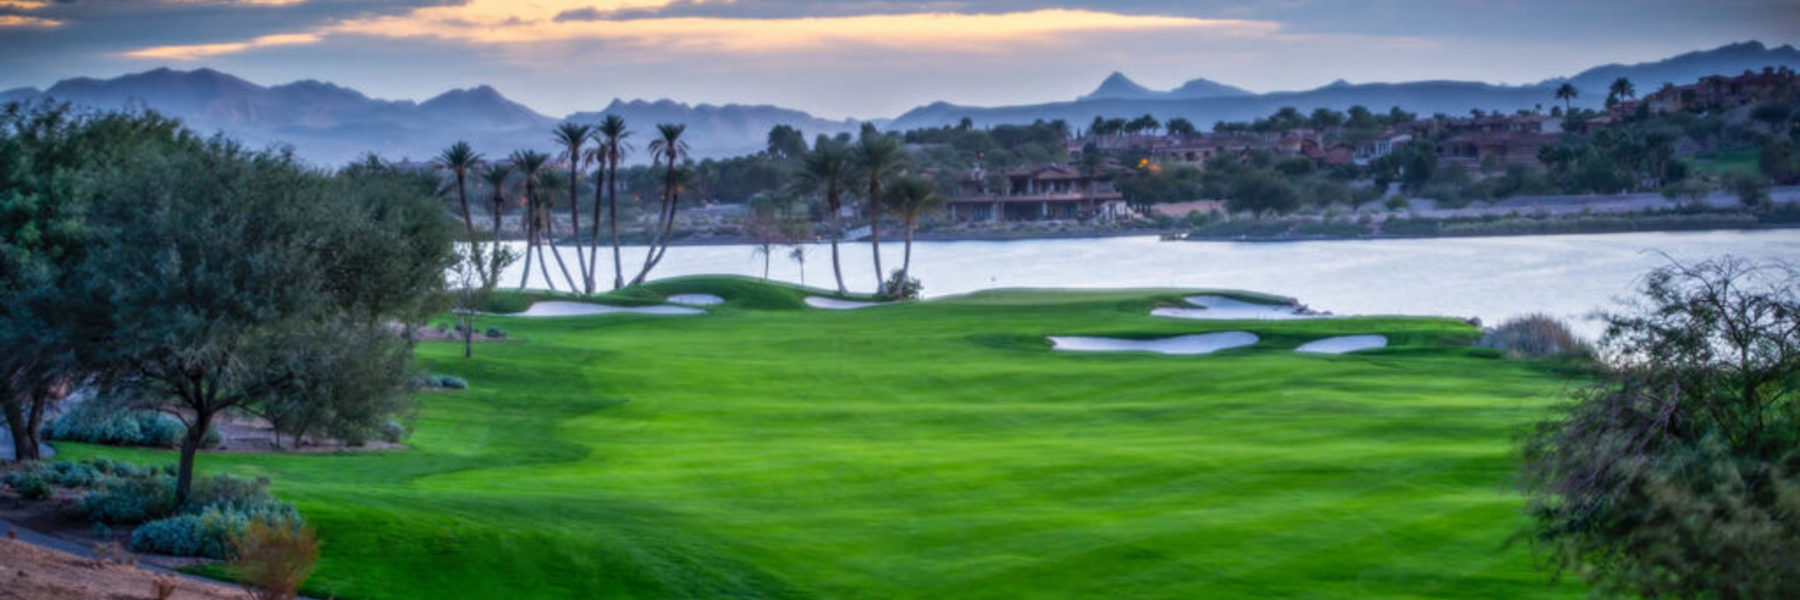 Golf Vacation Package - Sin City at its Finest! Luxor Resort + Angel Park/Revere/Chimera/Reflection Bay for $229!